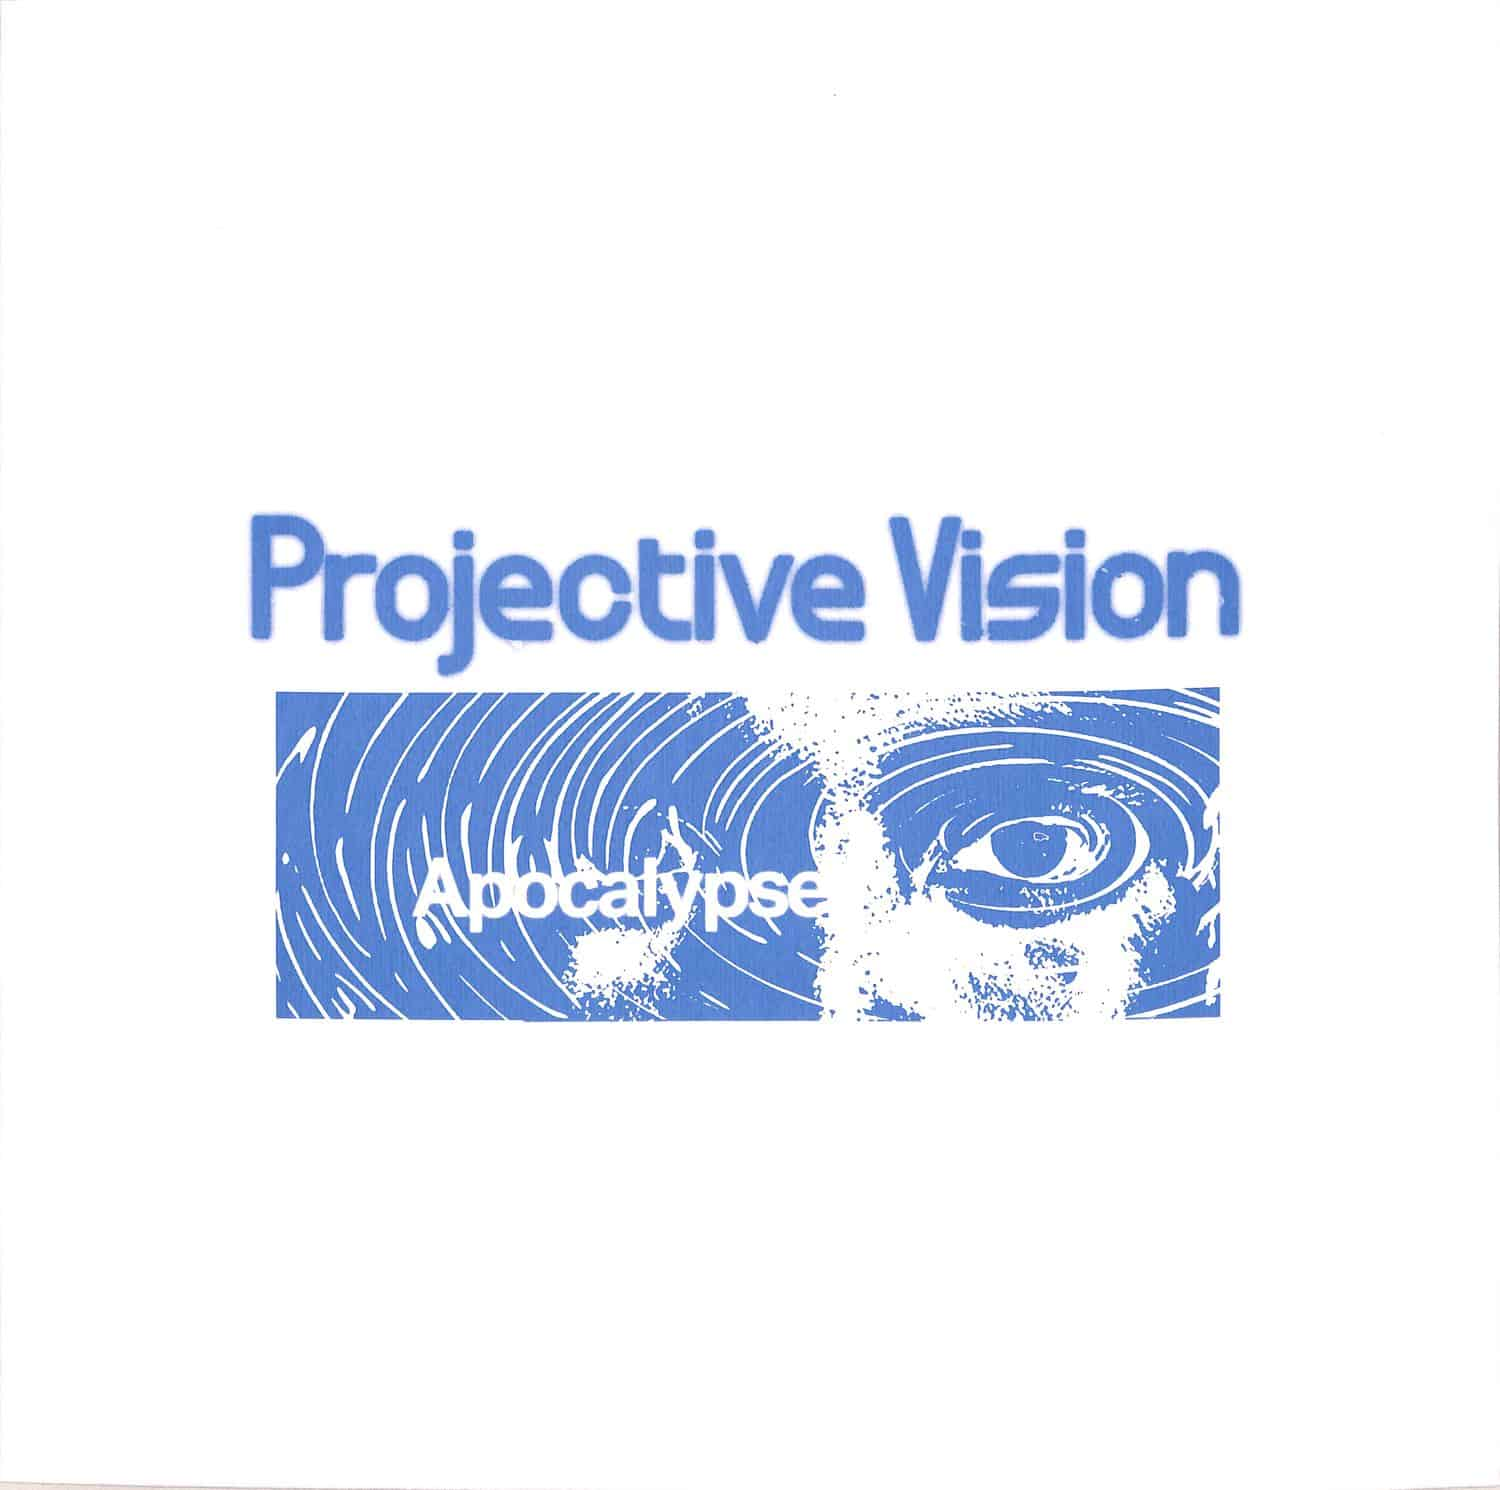 Projective Vision - APOCALYPSE